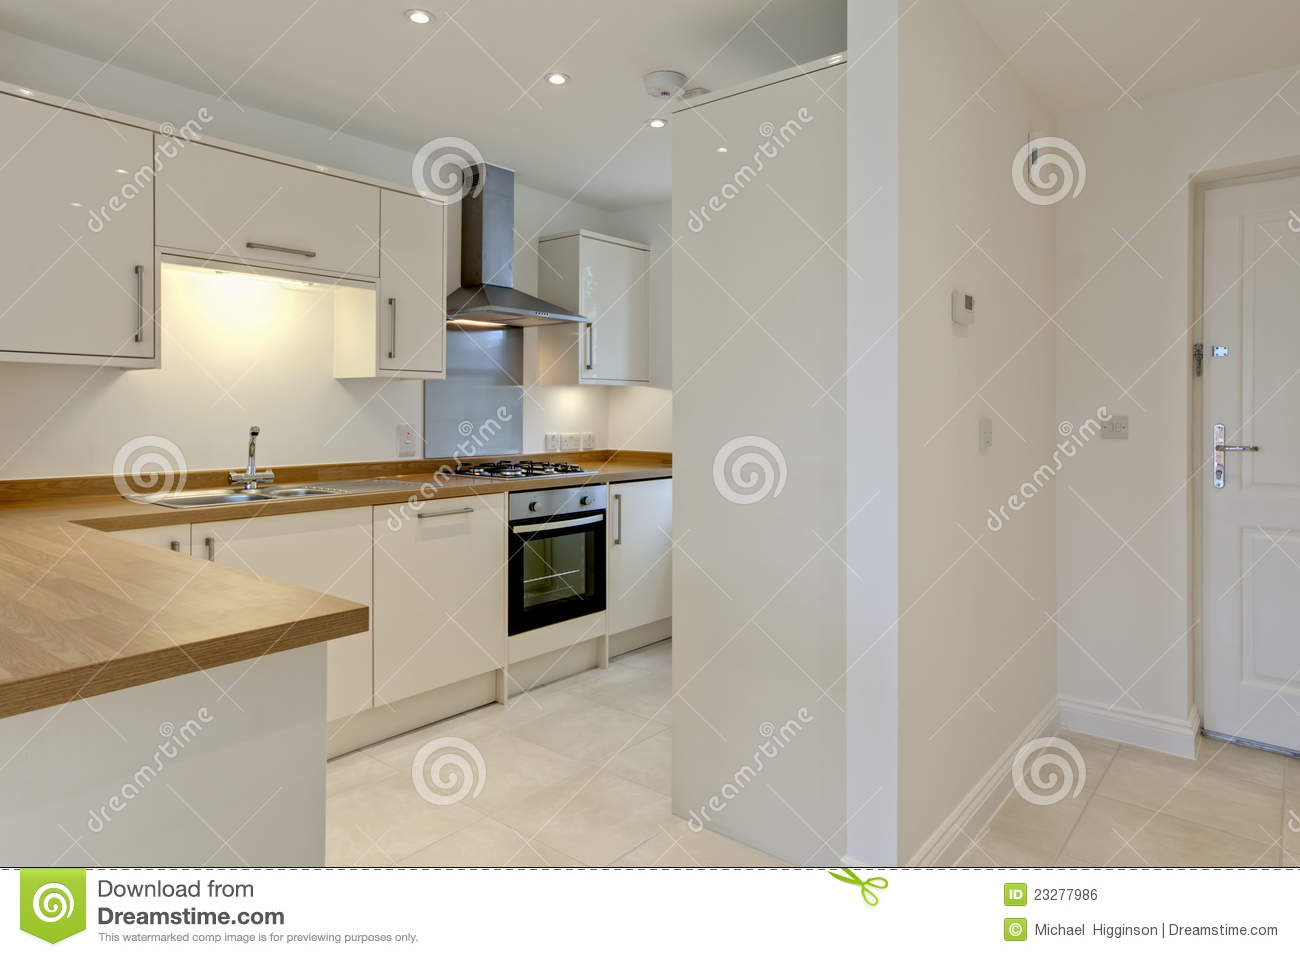 Modern Fitted Kitchen Royalty Free Stock Image - Image: 23277986